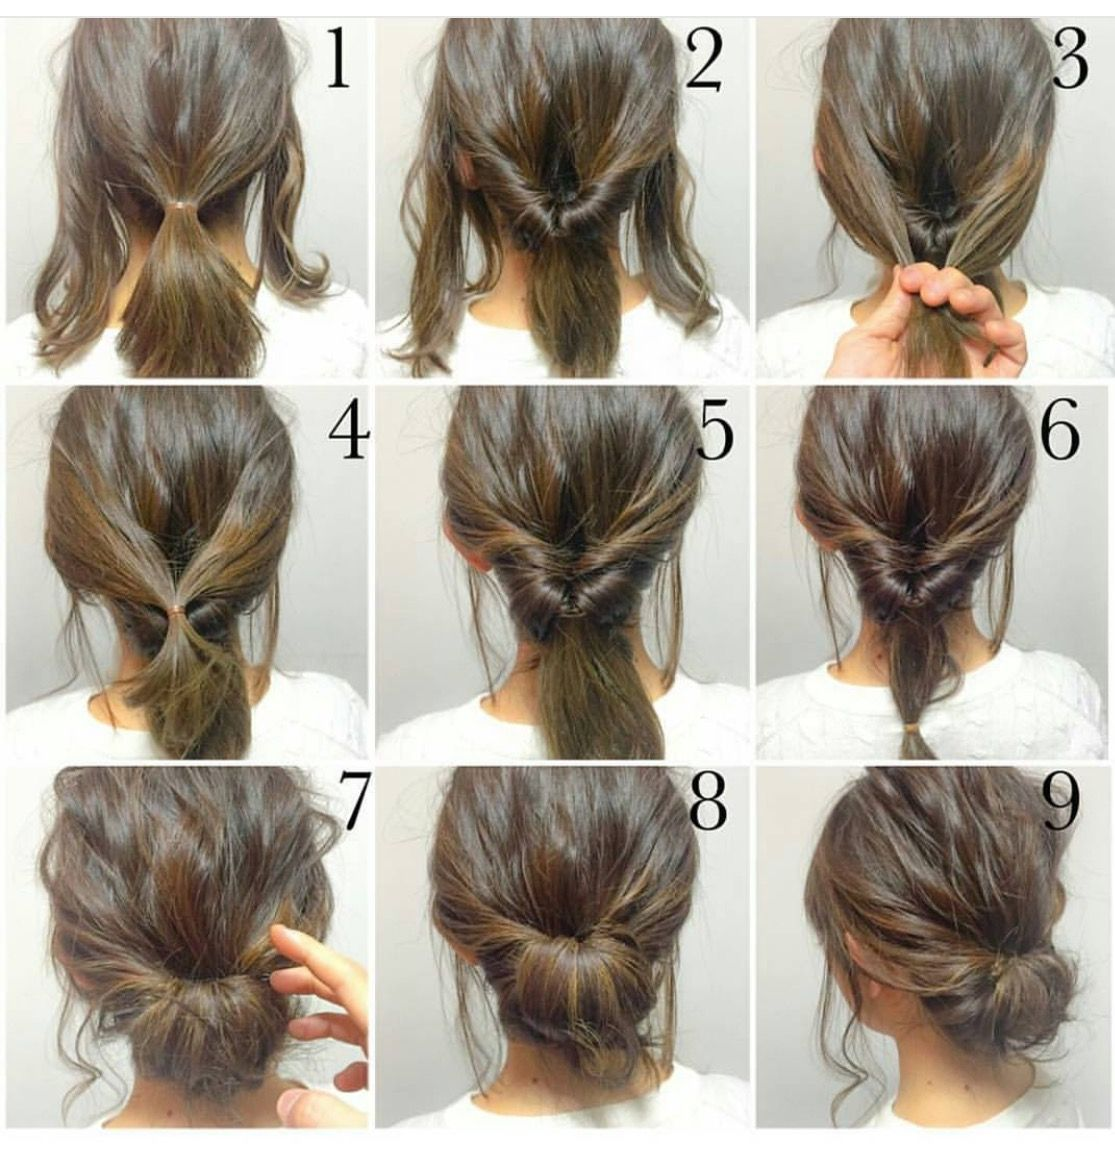 Long Hair Hairstyles Extraordinary Easy Hope This Works Out Quick Morning Hair  Hair  Pinterest